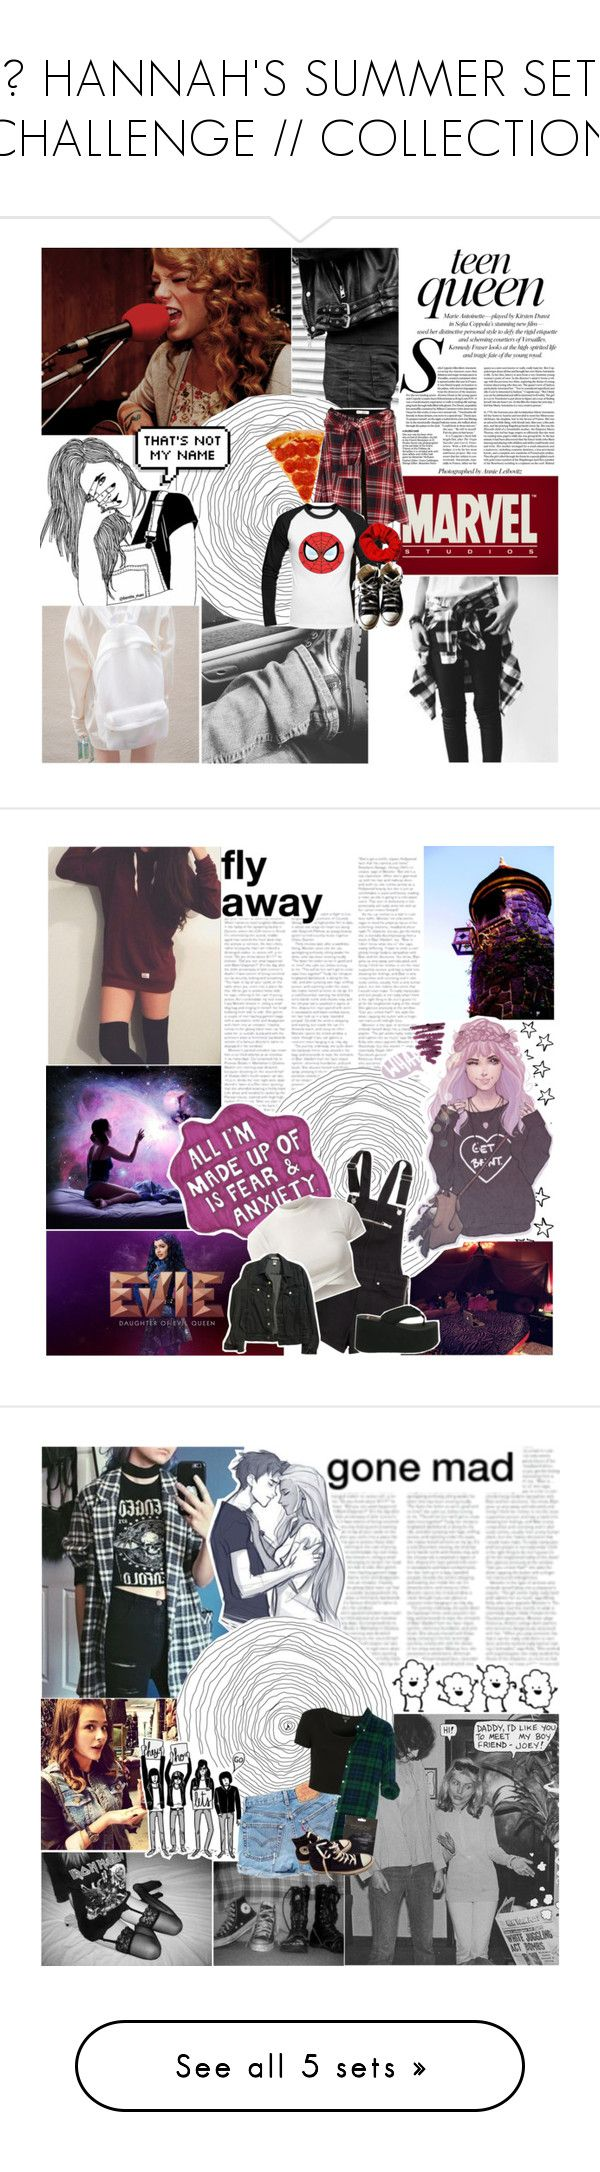 """☮ HANNAH'S SUMMER SET CHALLENGE // COLLECTION"" by frozendecembermoon ❤ liked on Polyvore featuring summersongsets, art, Urbanears, True Religion, Deux Lux, adidas, AT&T, Laura Mercier, Fujifilm and Iscream"